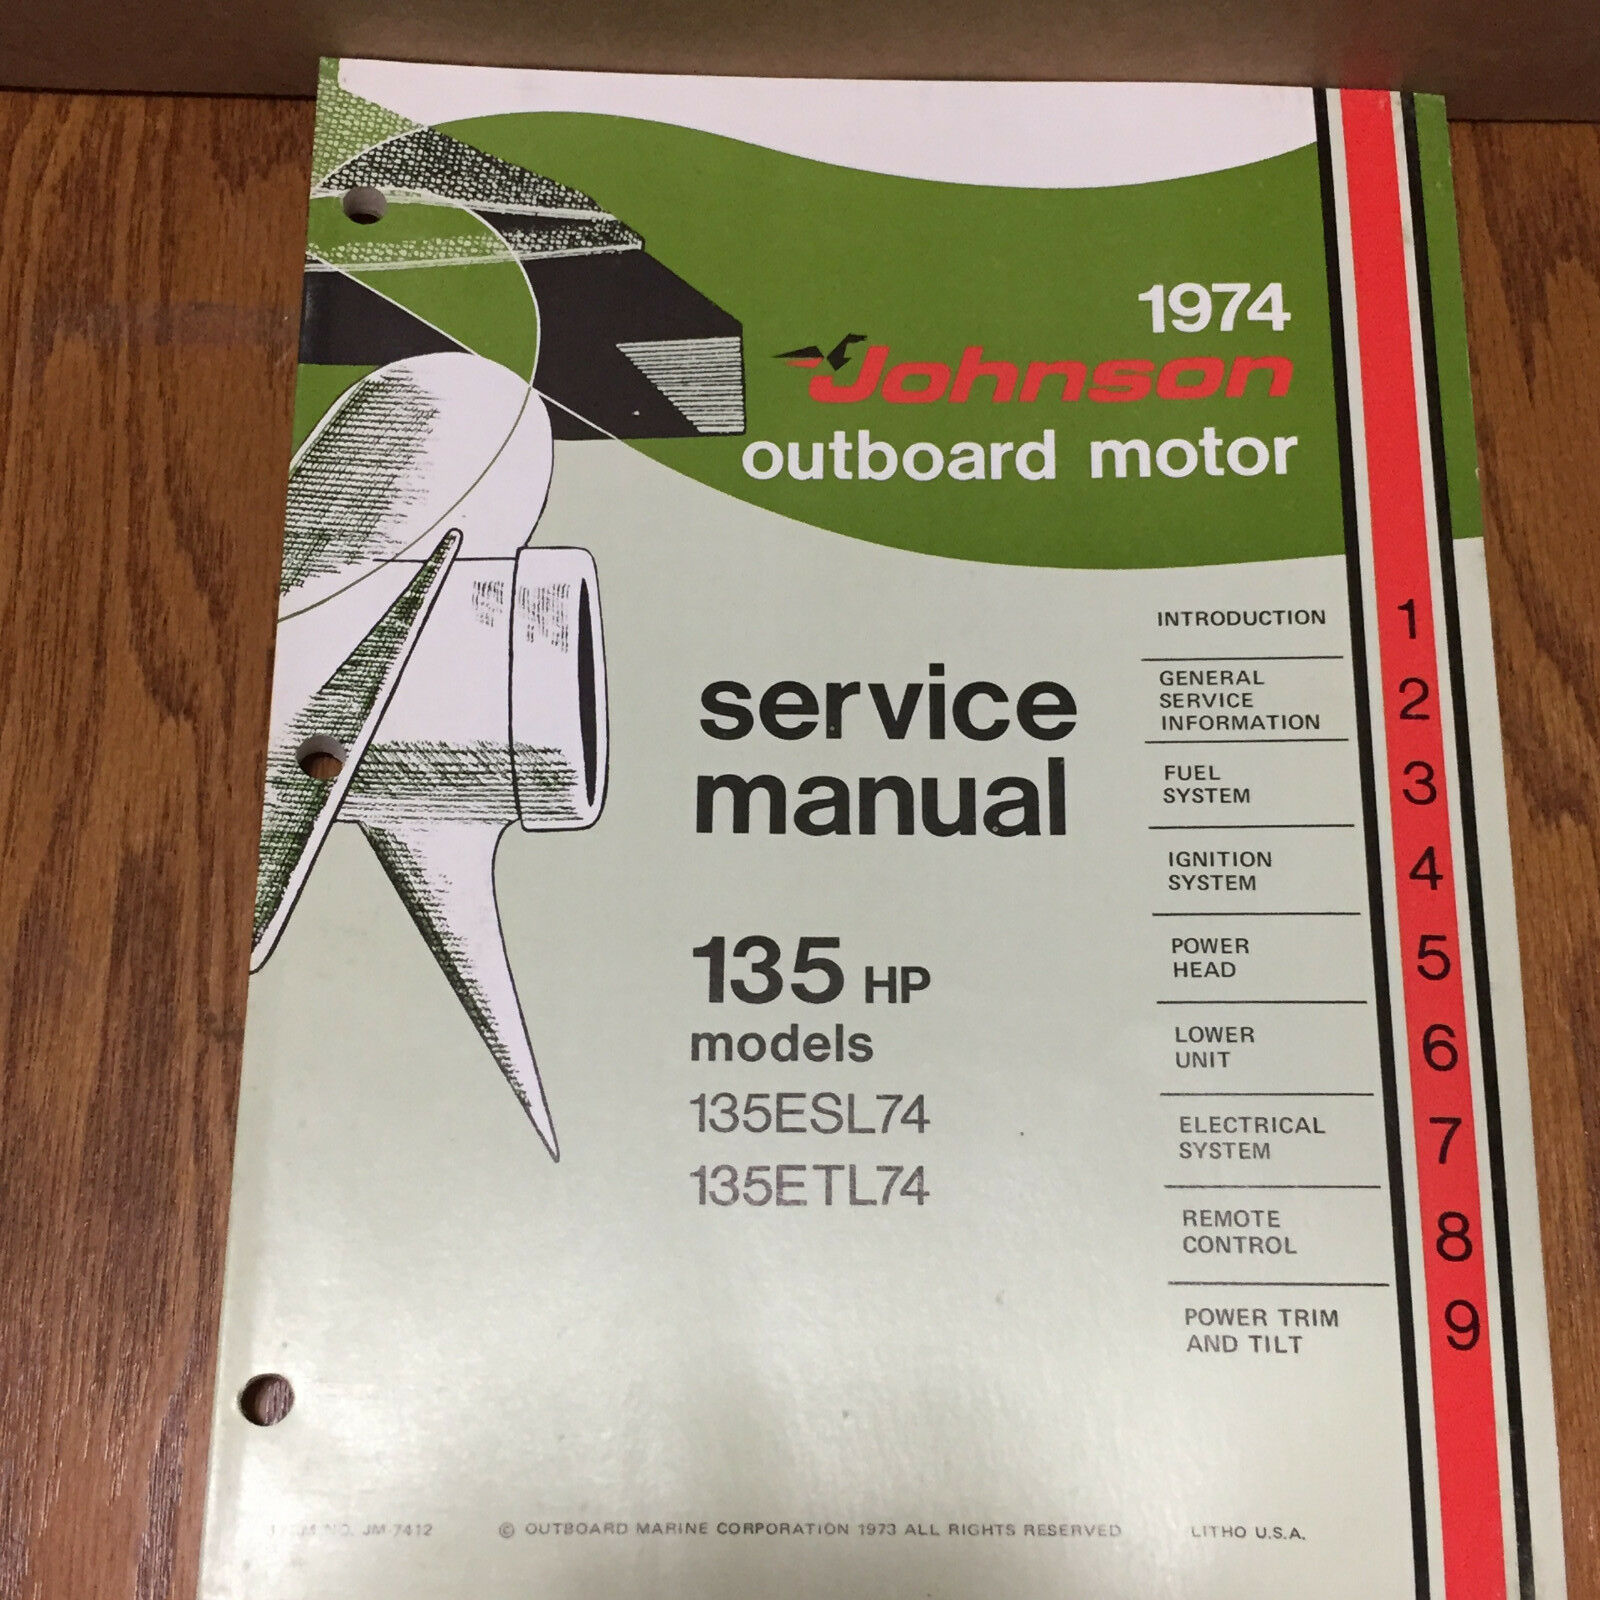 1974 Johnson Outboard Motor Service Manual 135HP Models 1 of 4Only 1 available ...